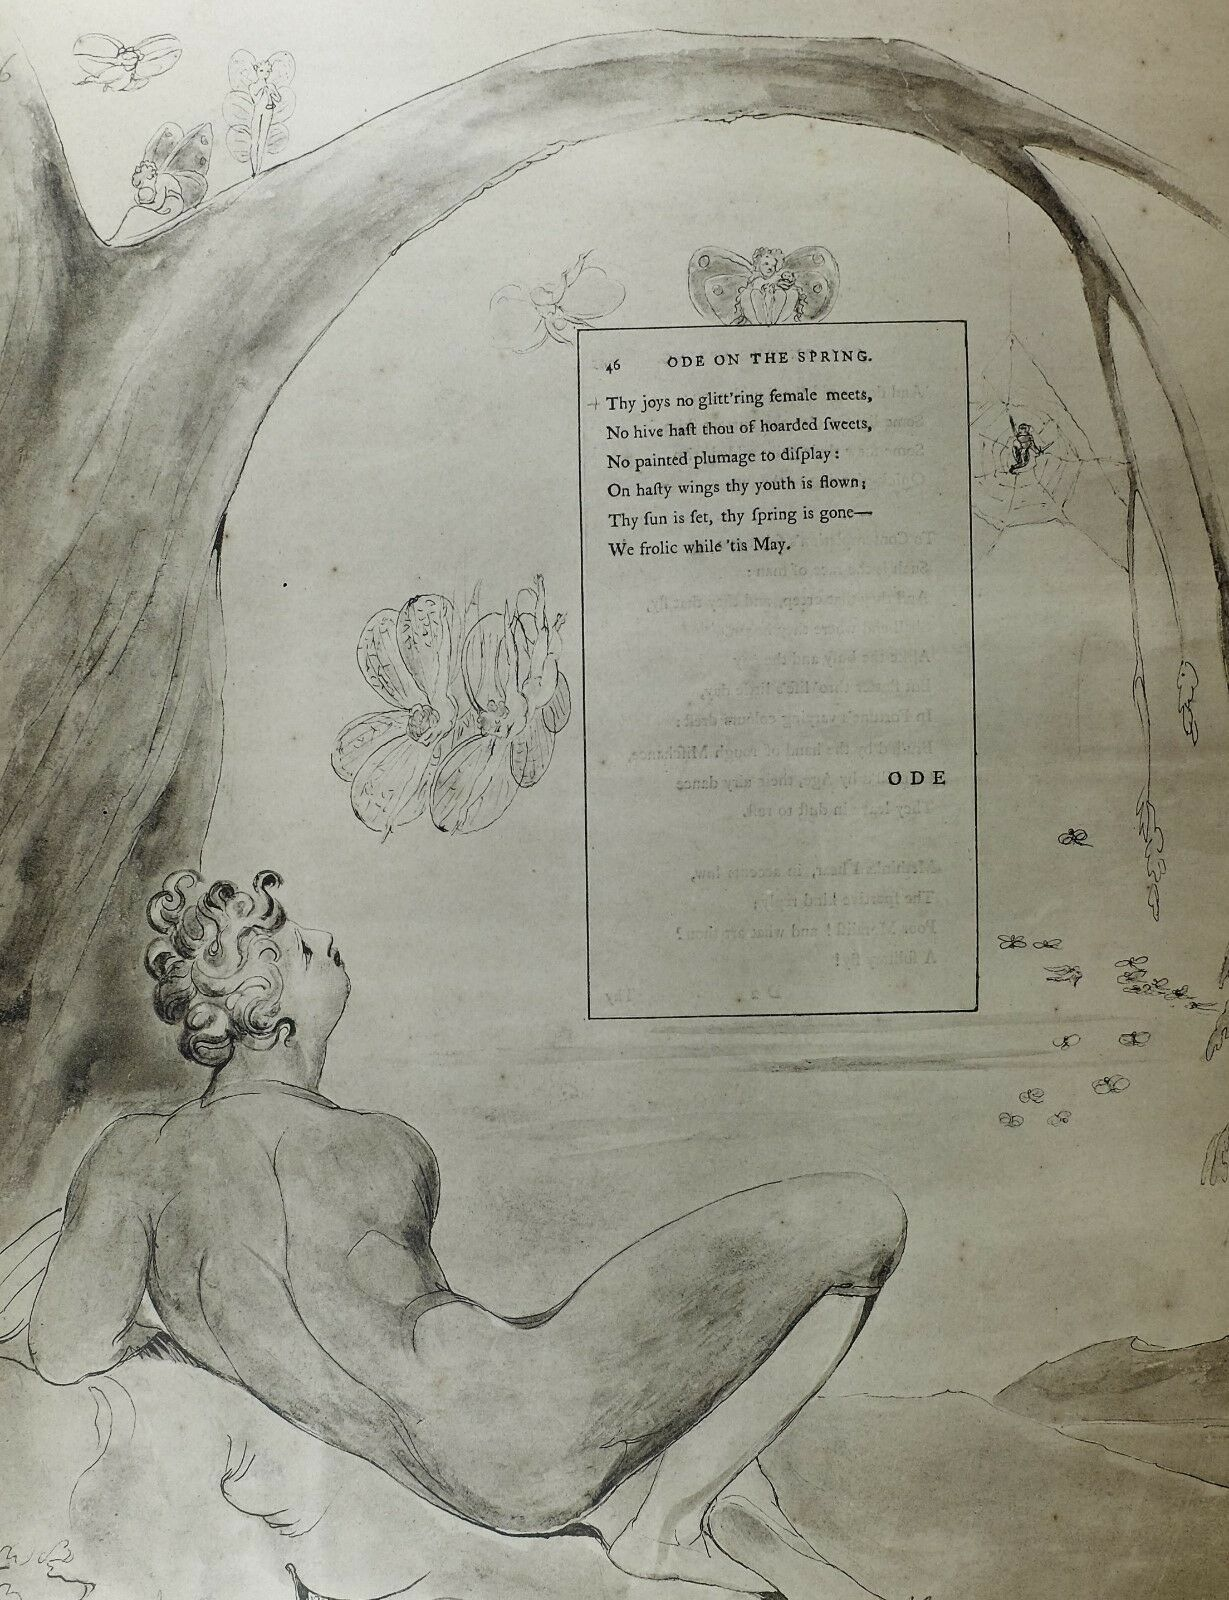 Primary image for 1922 FULL SIZE WILLIAM BLAKE LARGE PRINT THOMAS GRAY'S POEM ODE ON THE SPRING